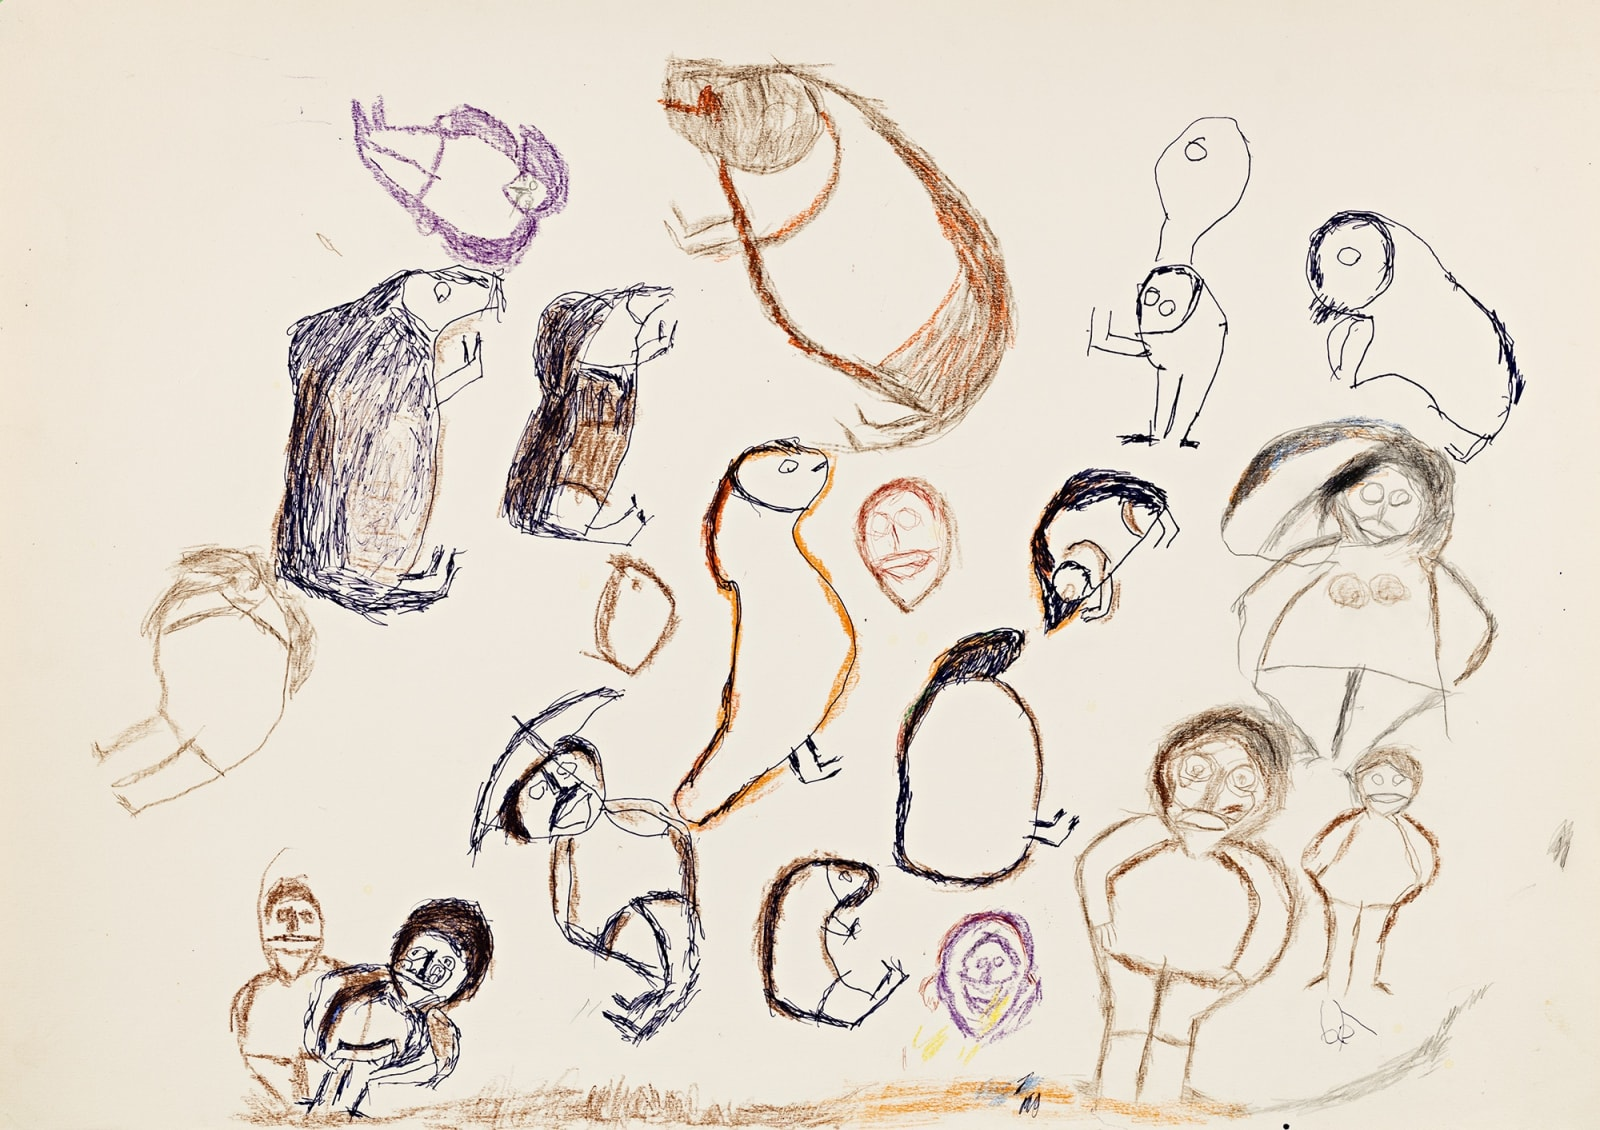 Lot 82 JOHN KAVIK (1897-1993), KANGIQLINIQ (RANKIN INLET) Untitled (People, Muskoxen, and Birds)*, c. 1979-80 pen and crayon drawing, 29.875 x 22.175 in (76 x 56 cm) Estimate: $3,500— $5,000 Price realized: $3,600